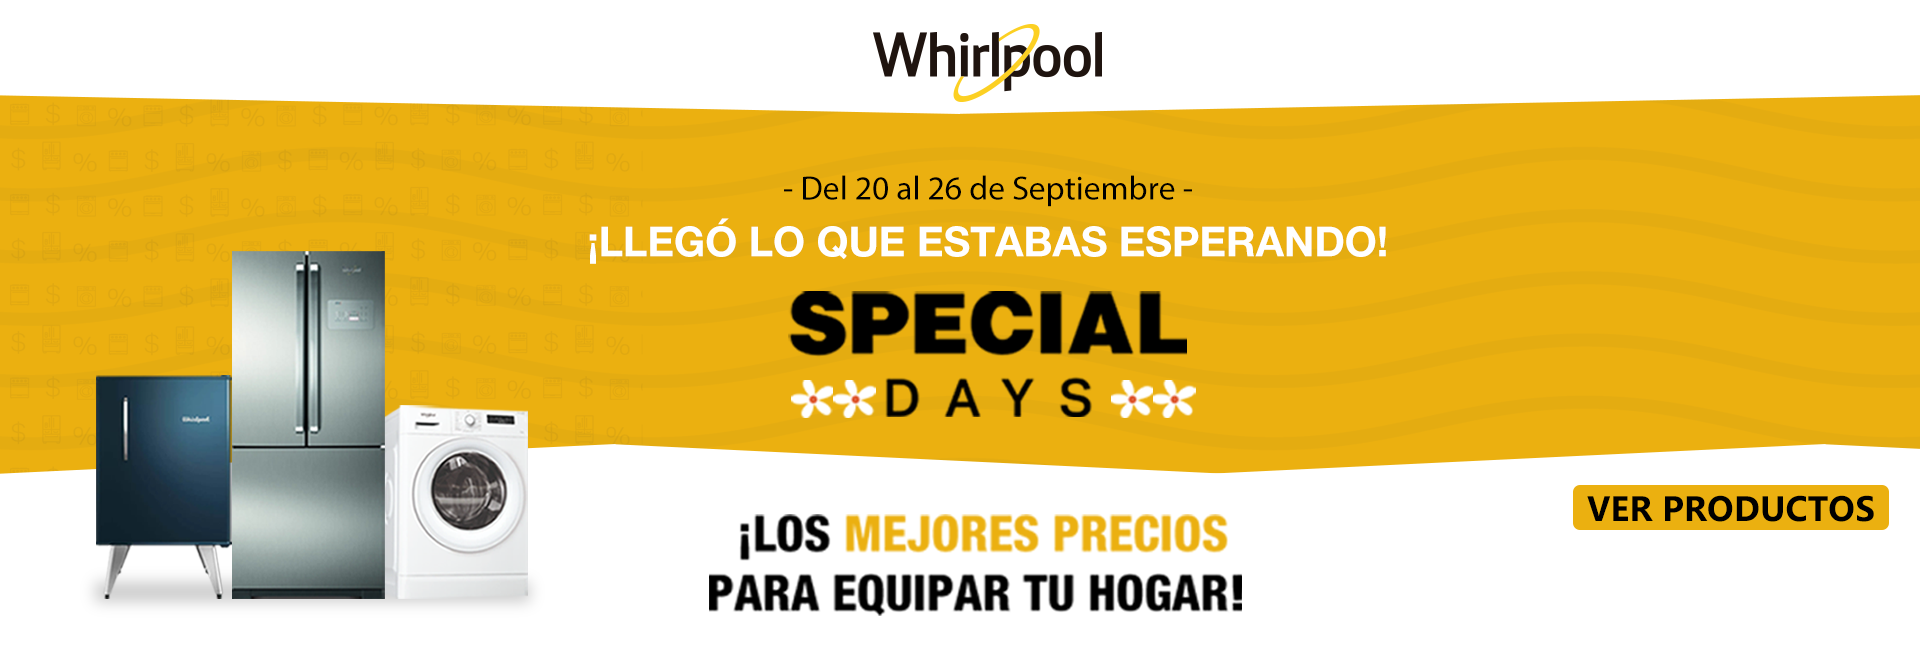 Special days Whirlpool